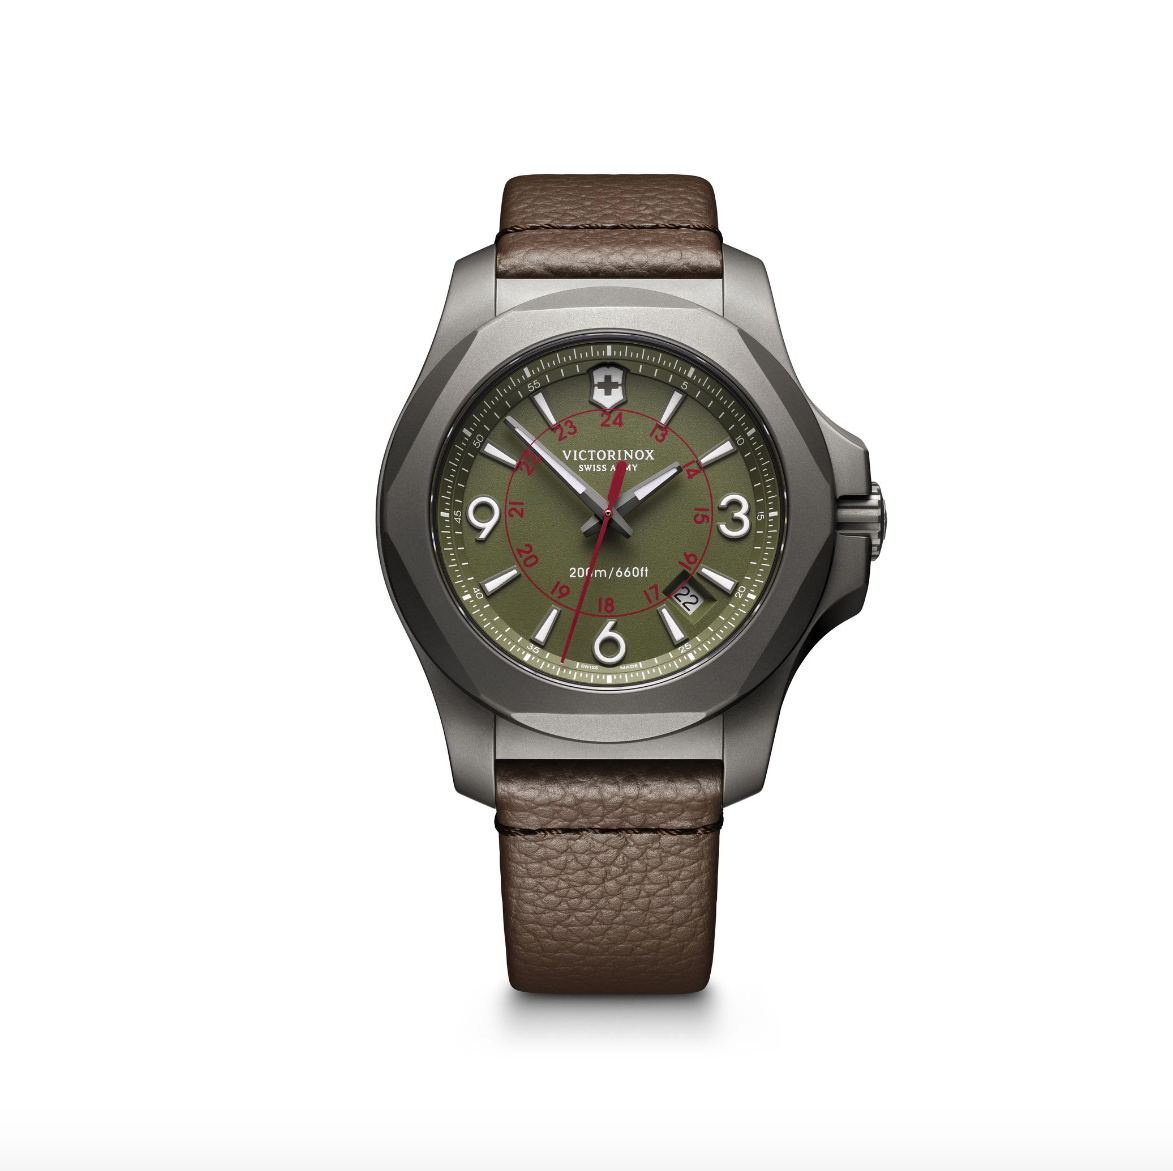 Victorinox Swiss Army I.N.O.X. Titanium - Talisman Collection Fine Jewelers